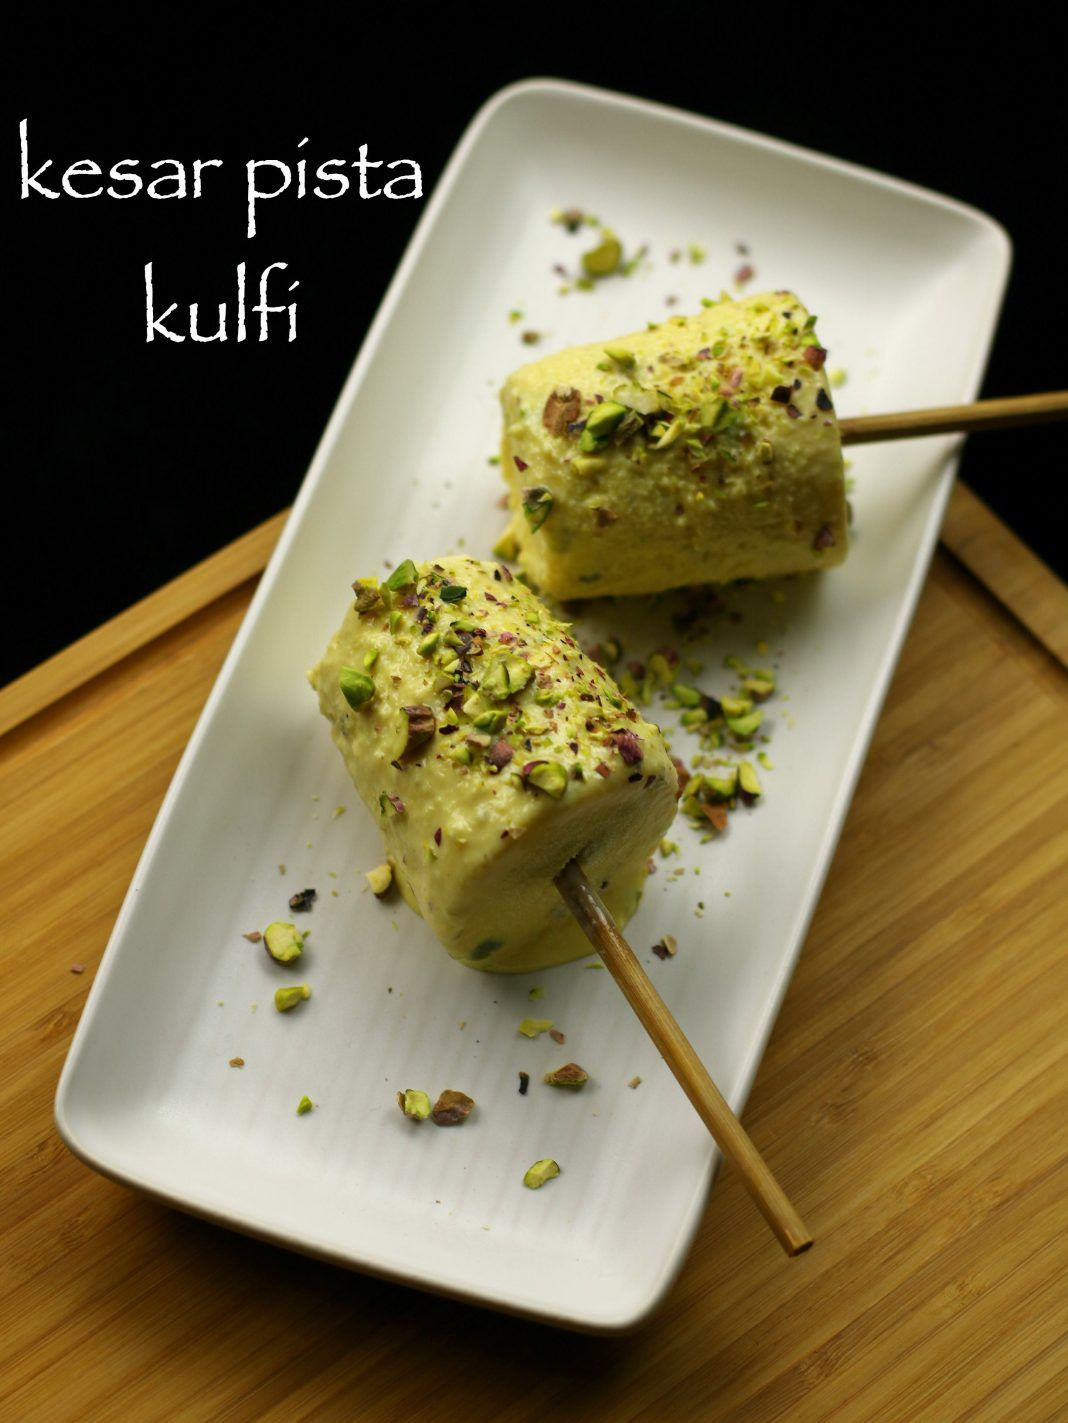 Kulfi Recipe Kesar Pista Kulfi Recipe Kulfi Ice Cream Recipe Kulfi Recipe Recipes Cooking Recipes Desserts